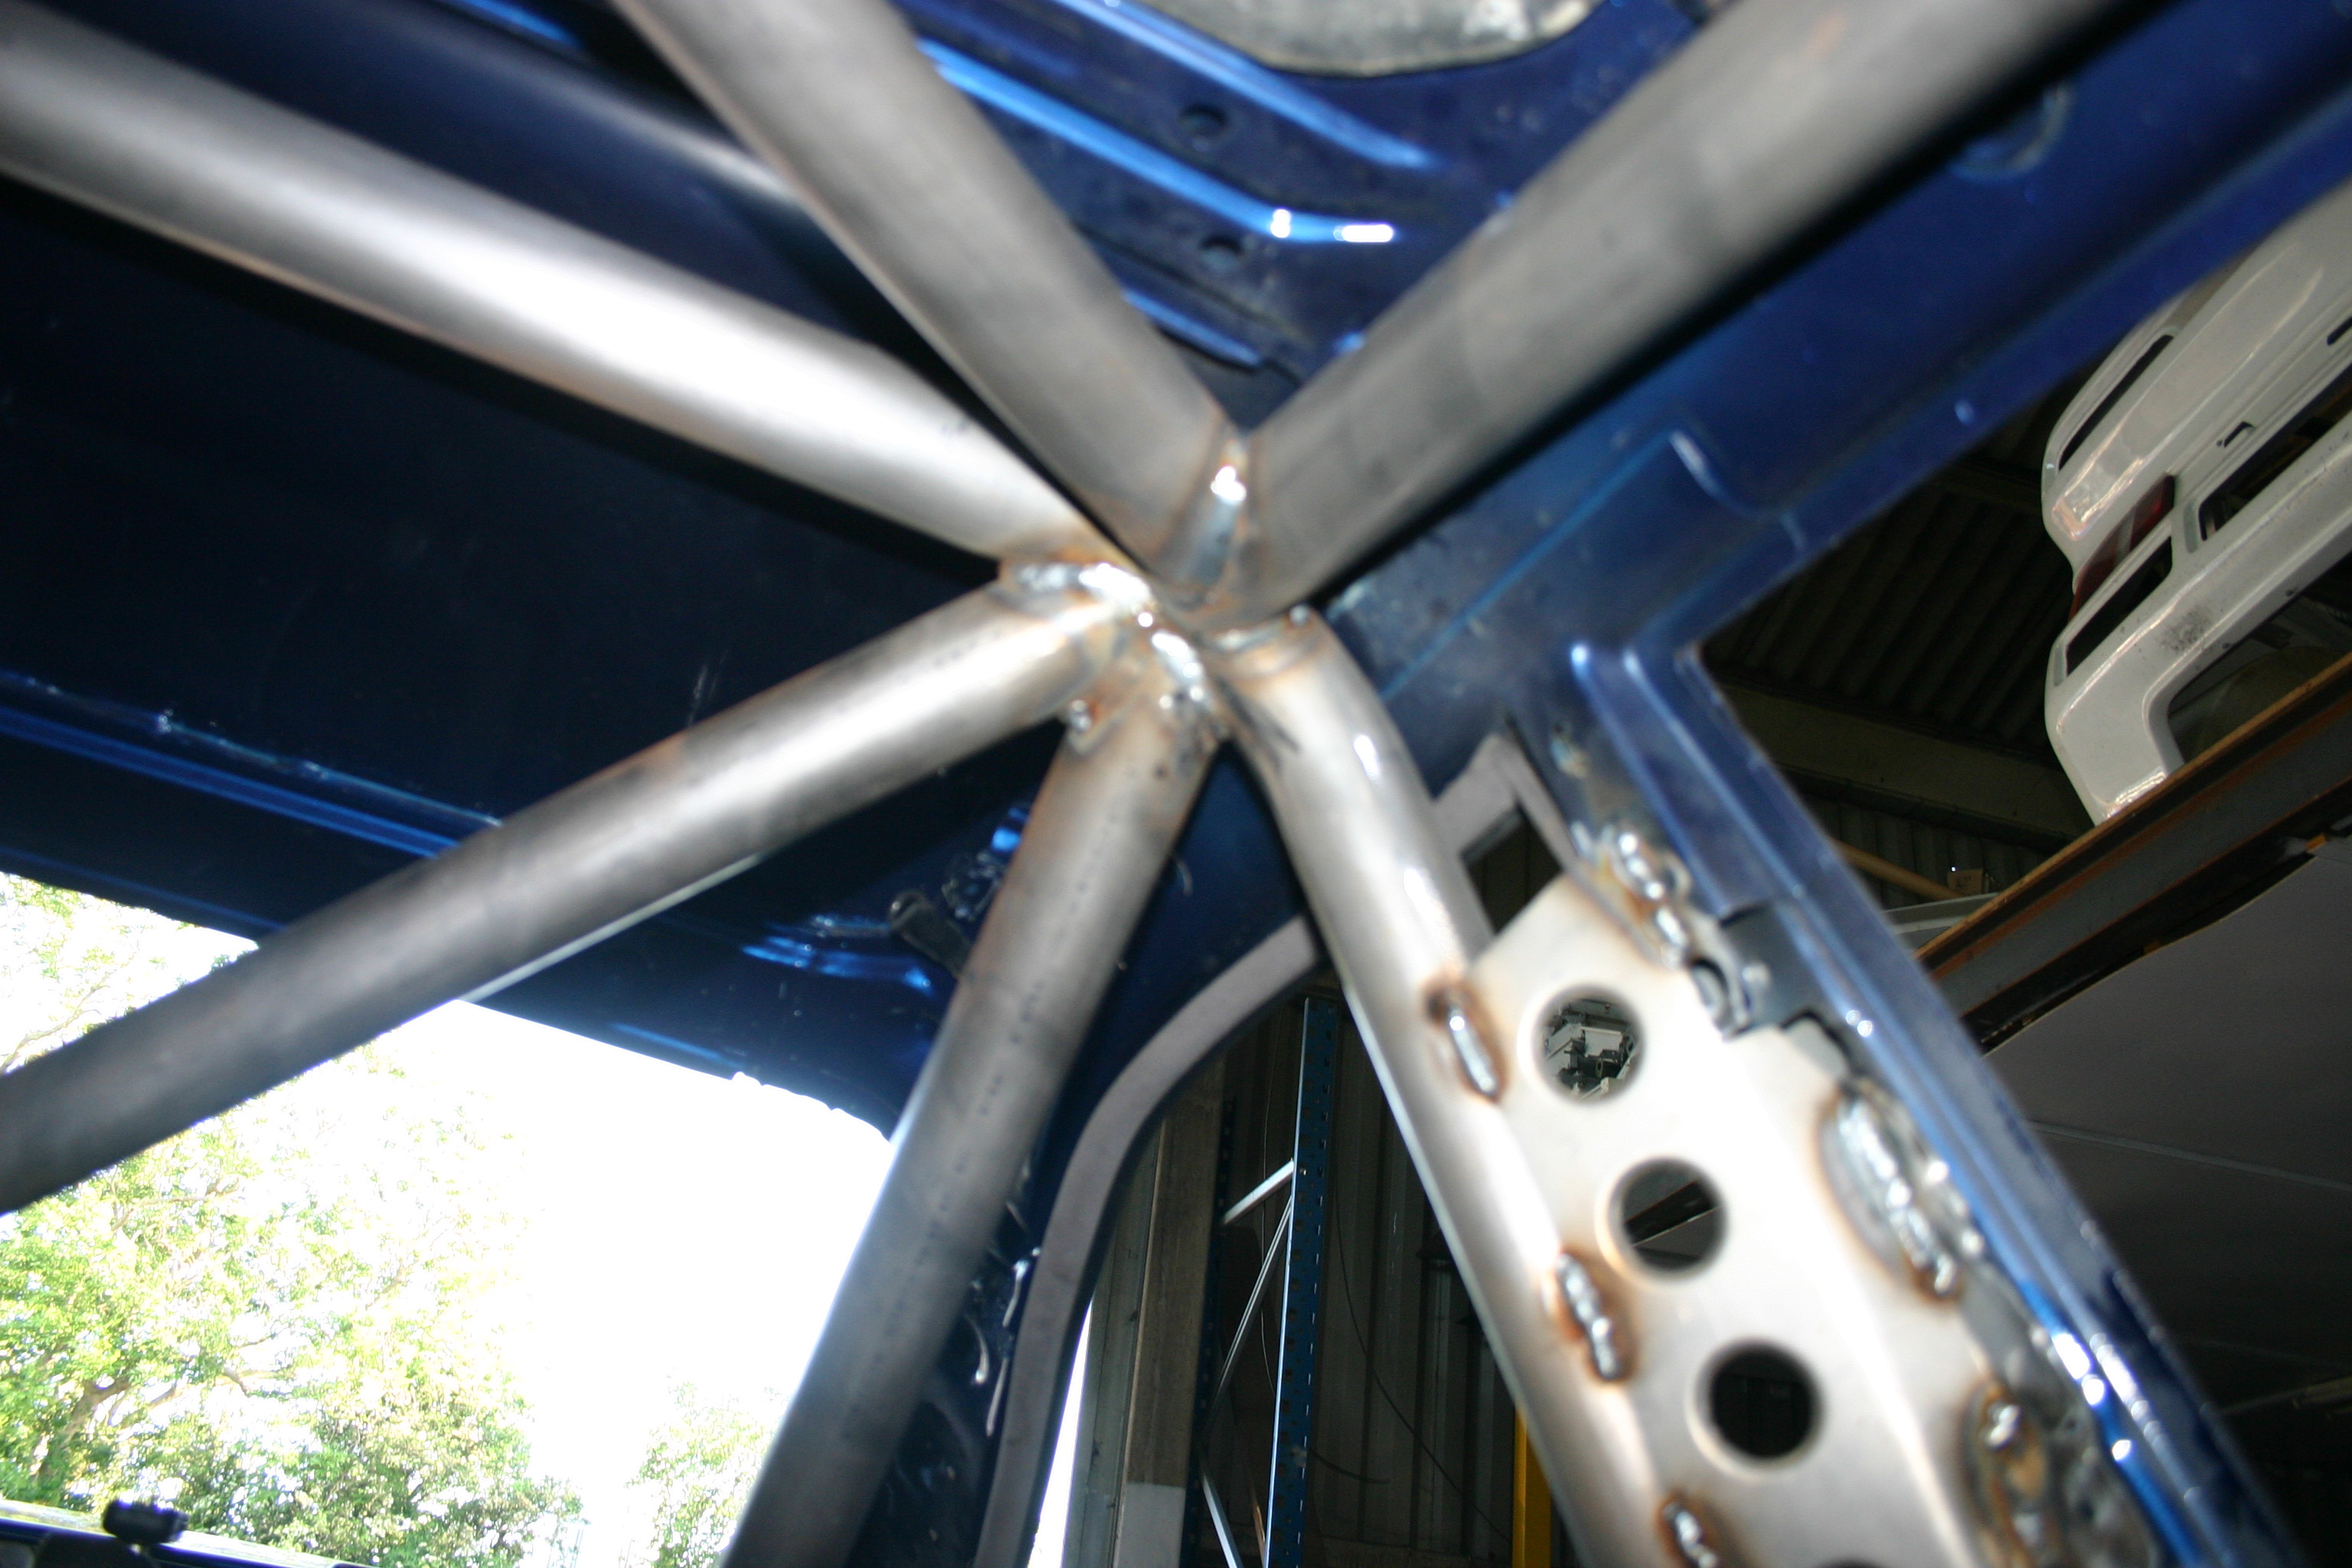 BMWe36 M3 Roll cage